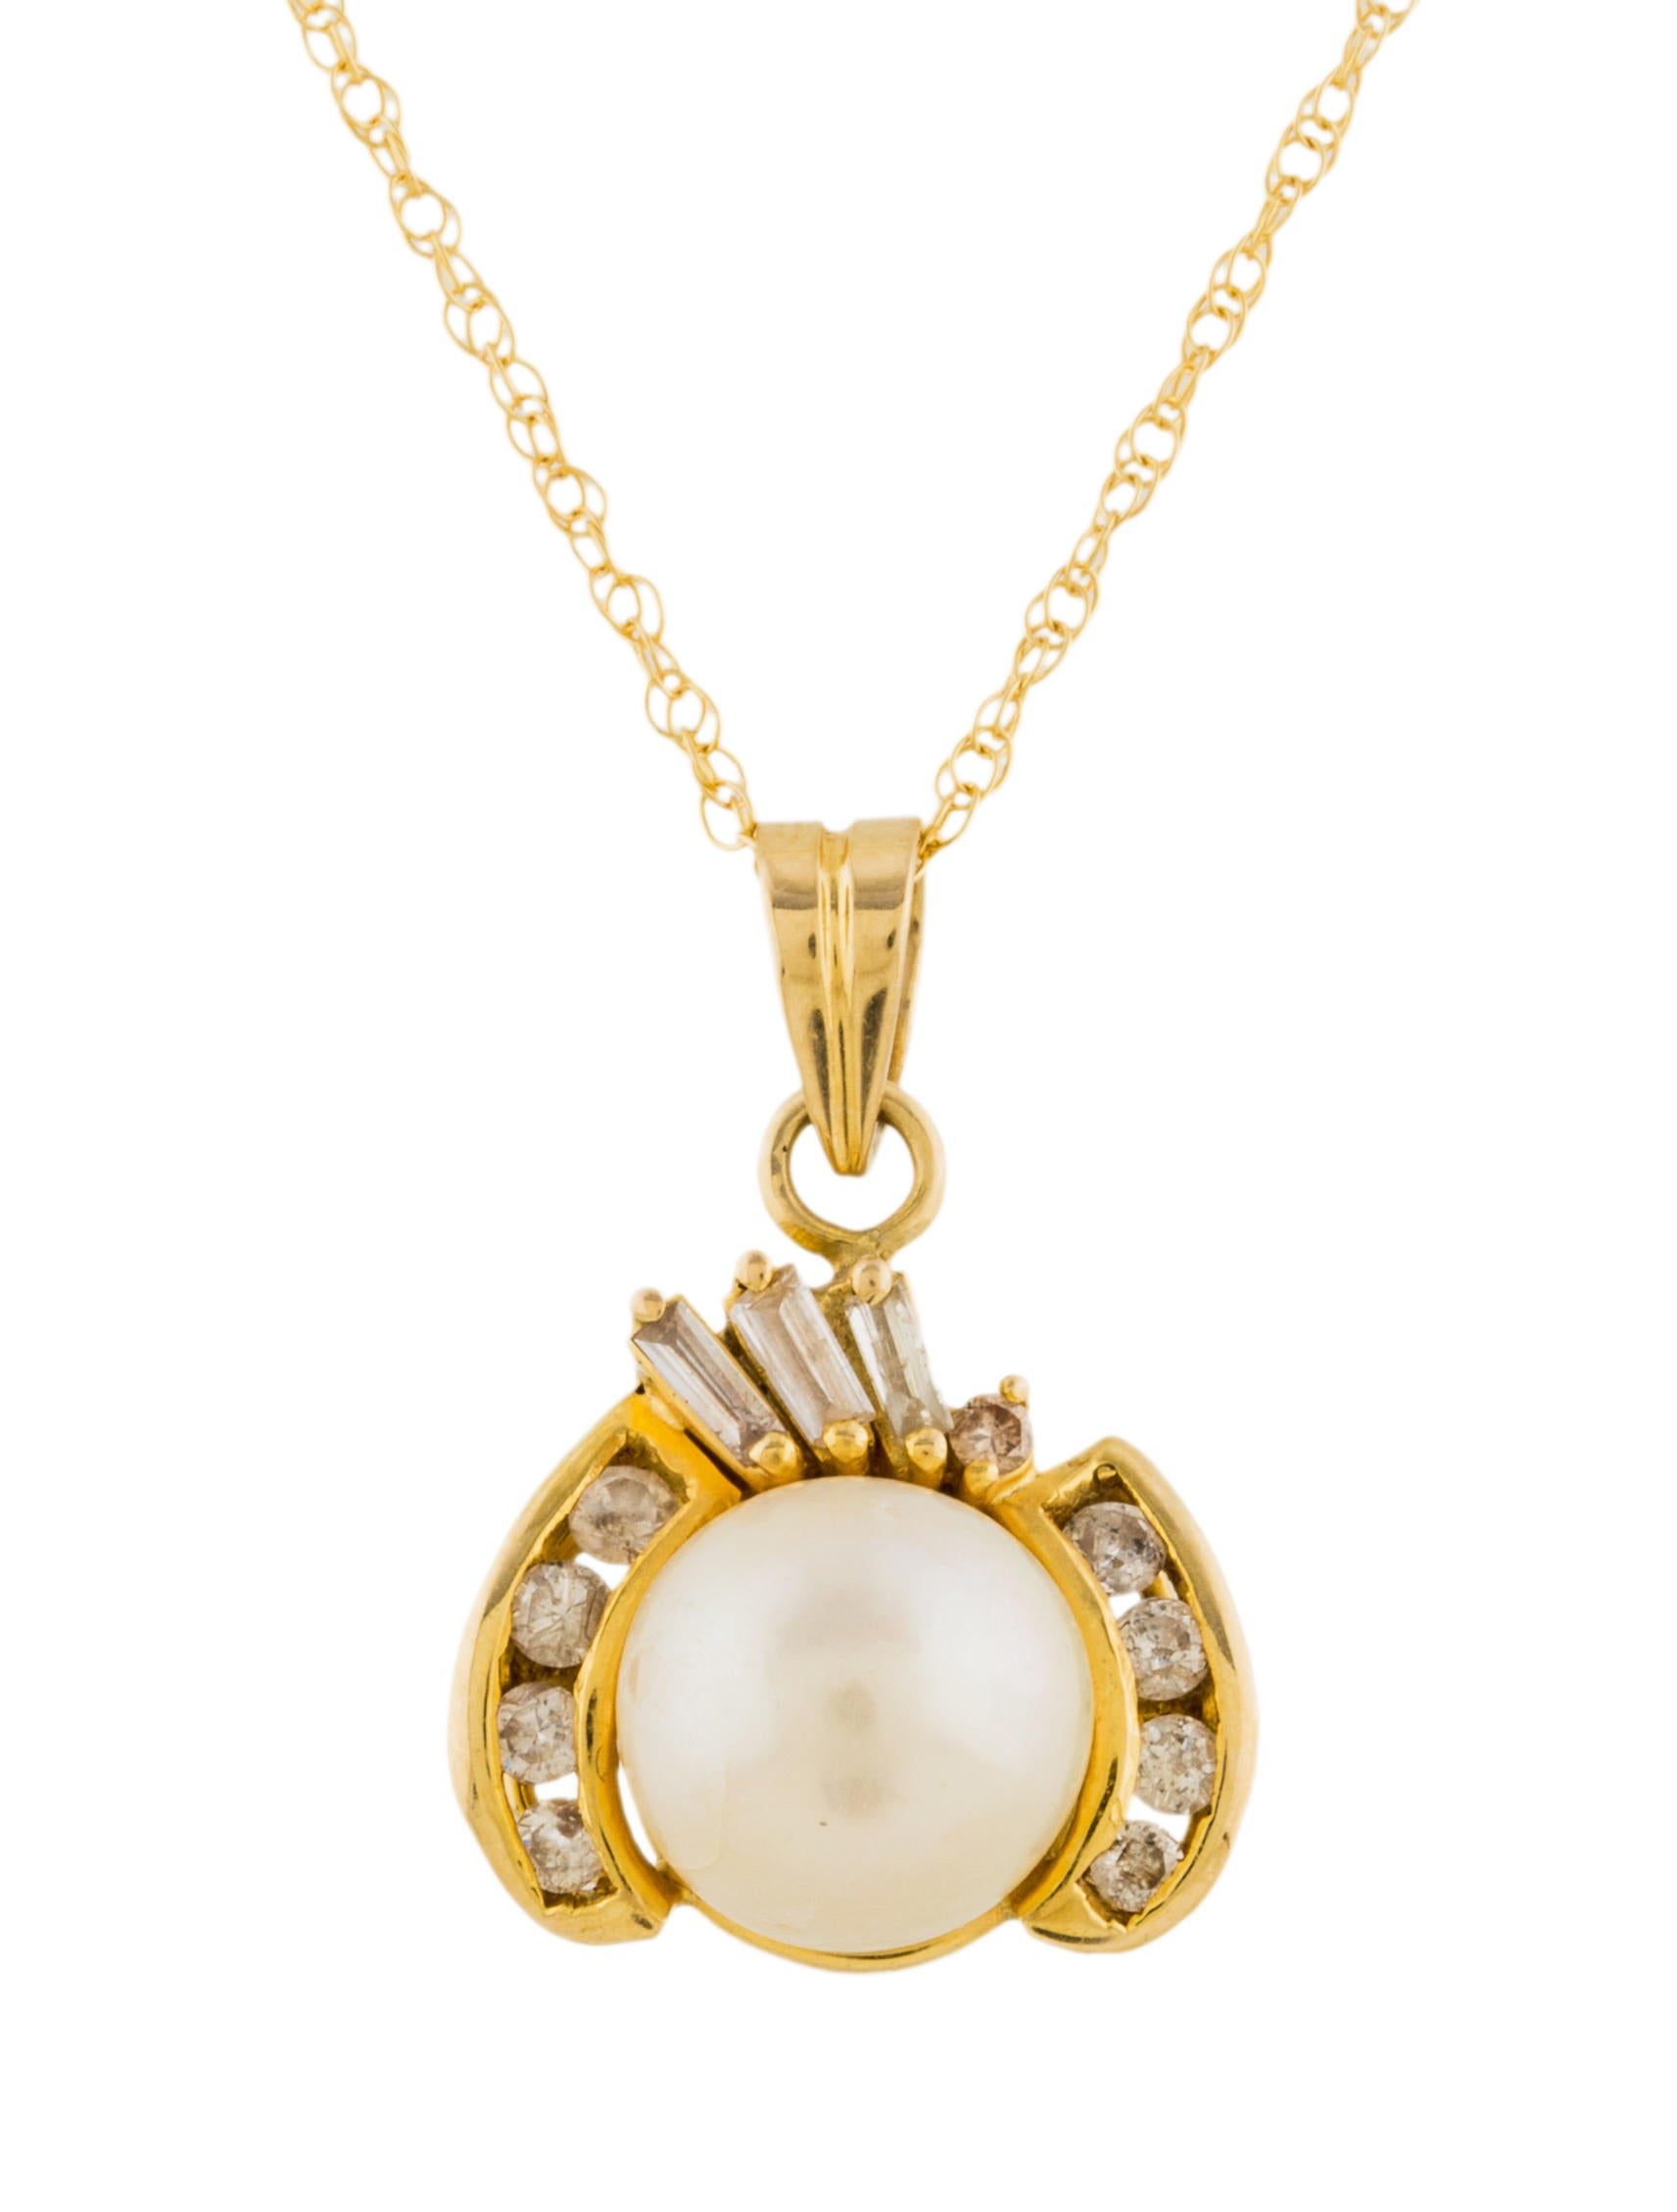 14K Pearl & Diamond Pendant Necklace - Necklaces ...